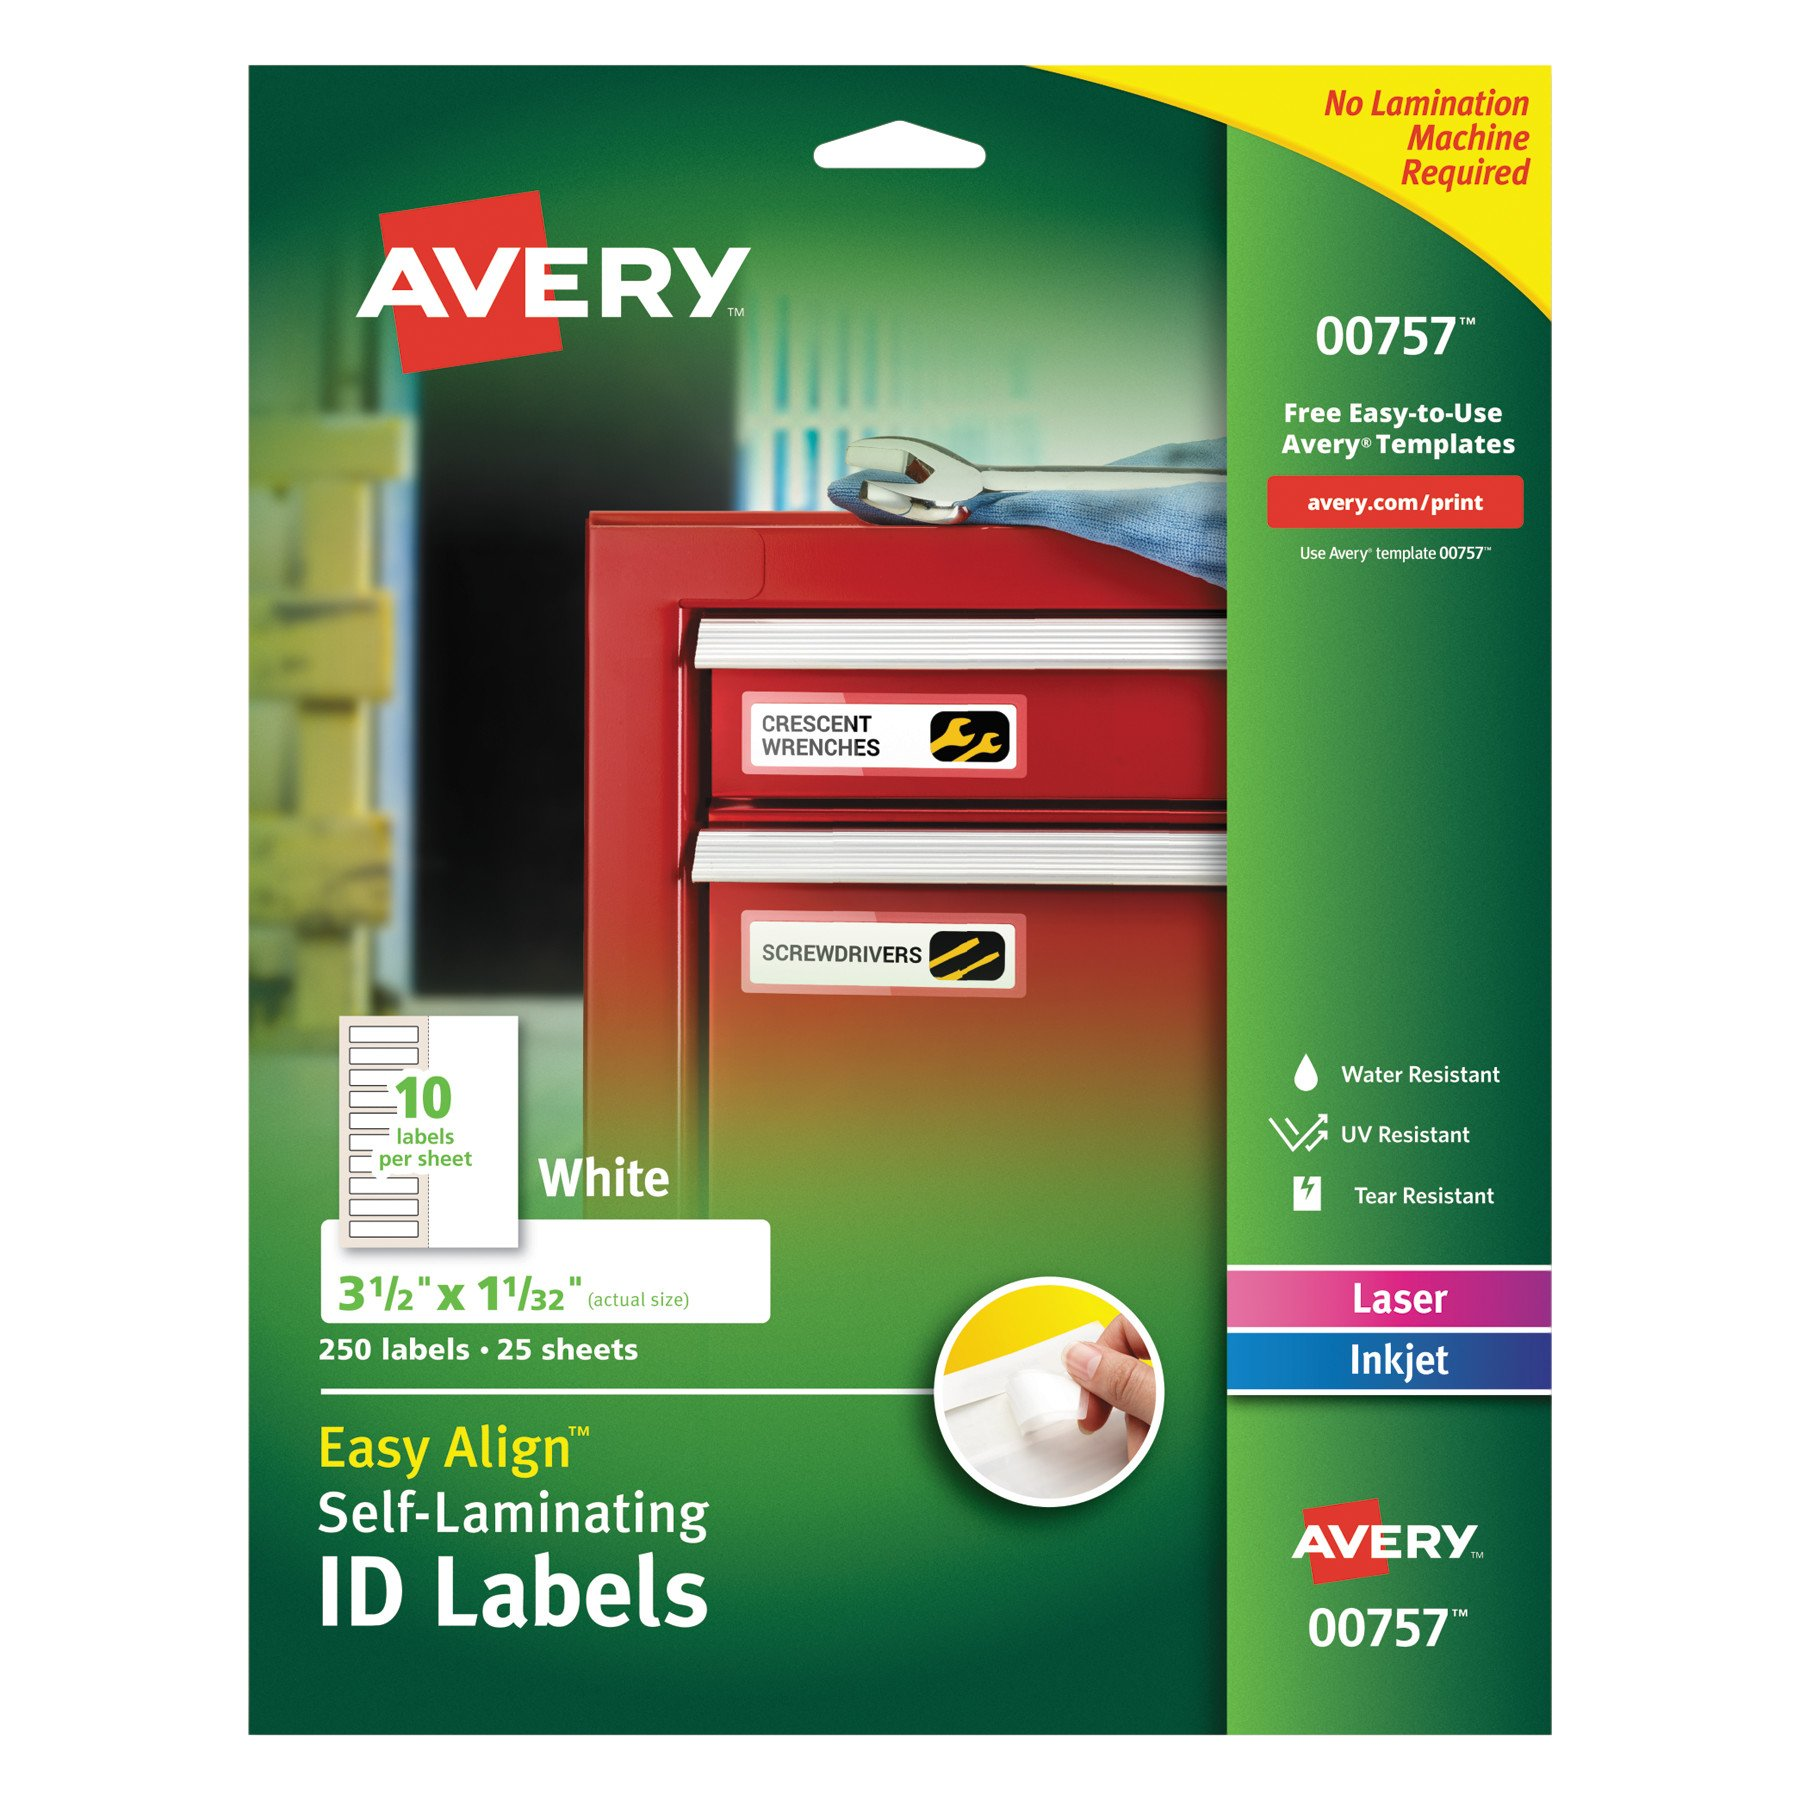 Avery 00757 Easy Align Self-Laminating ID Labels, Laser/Inkjet, 1 1/32 x 3 1/2, White (Pack of 250) by AVERY